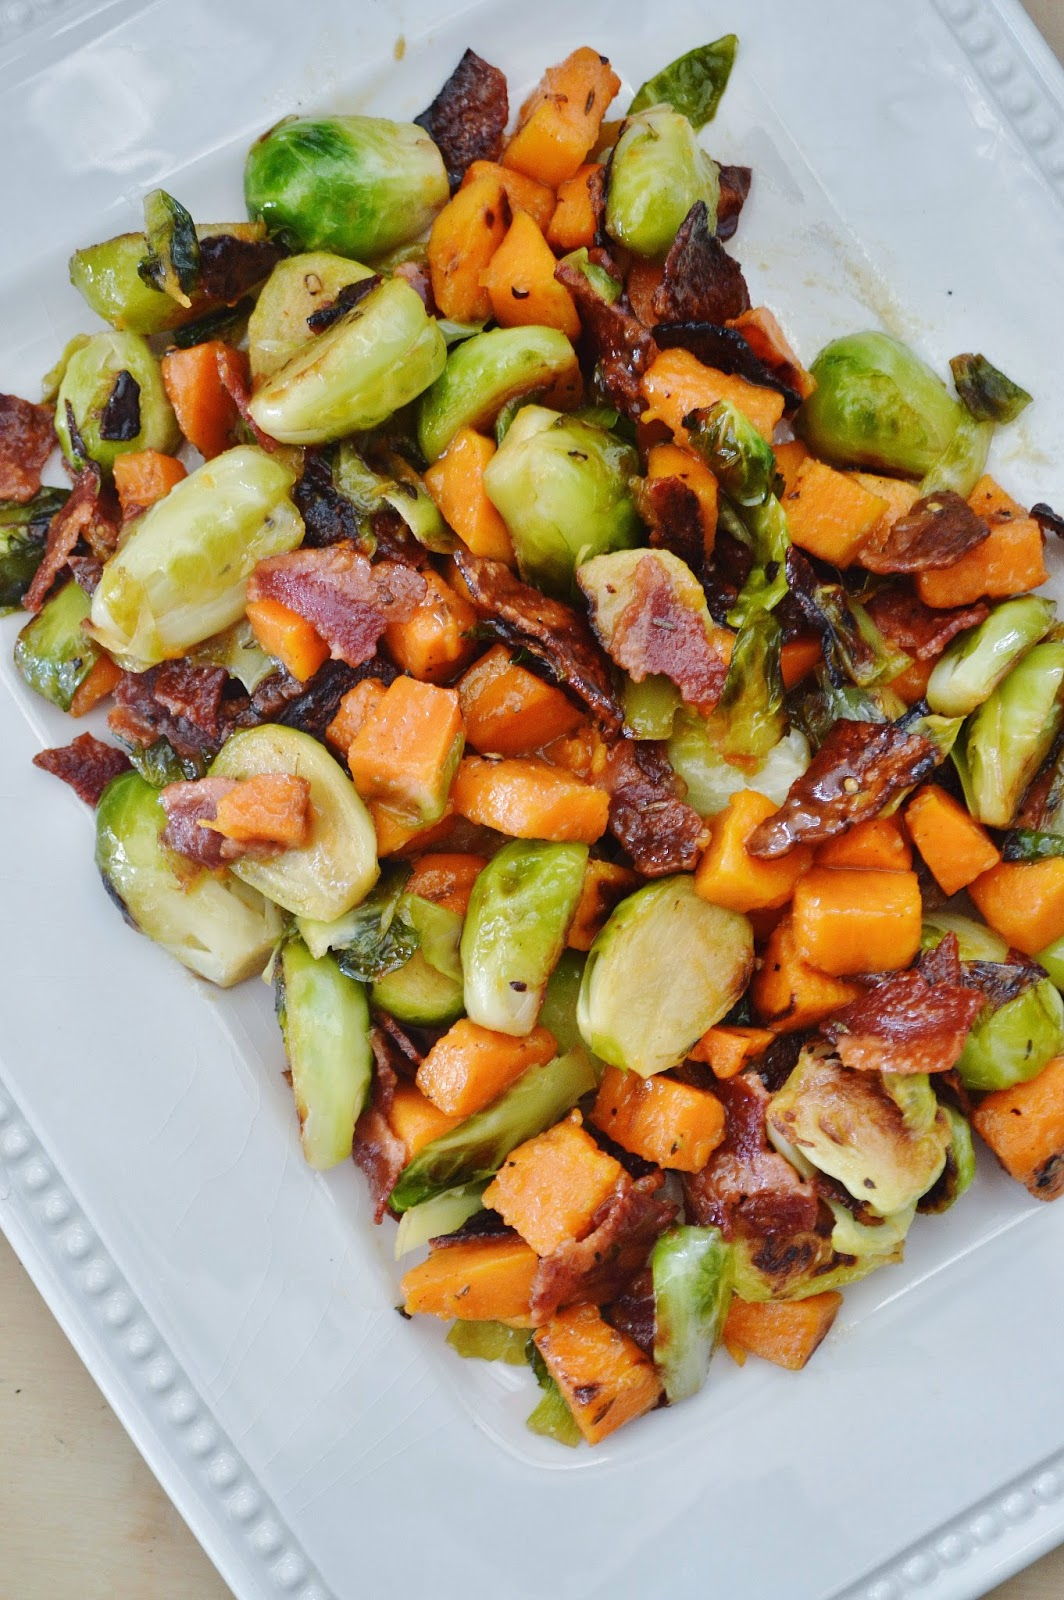 ... : Roasted Sweet Potato and Brussel Sprouts with Shallot Vinaigrette